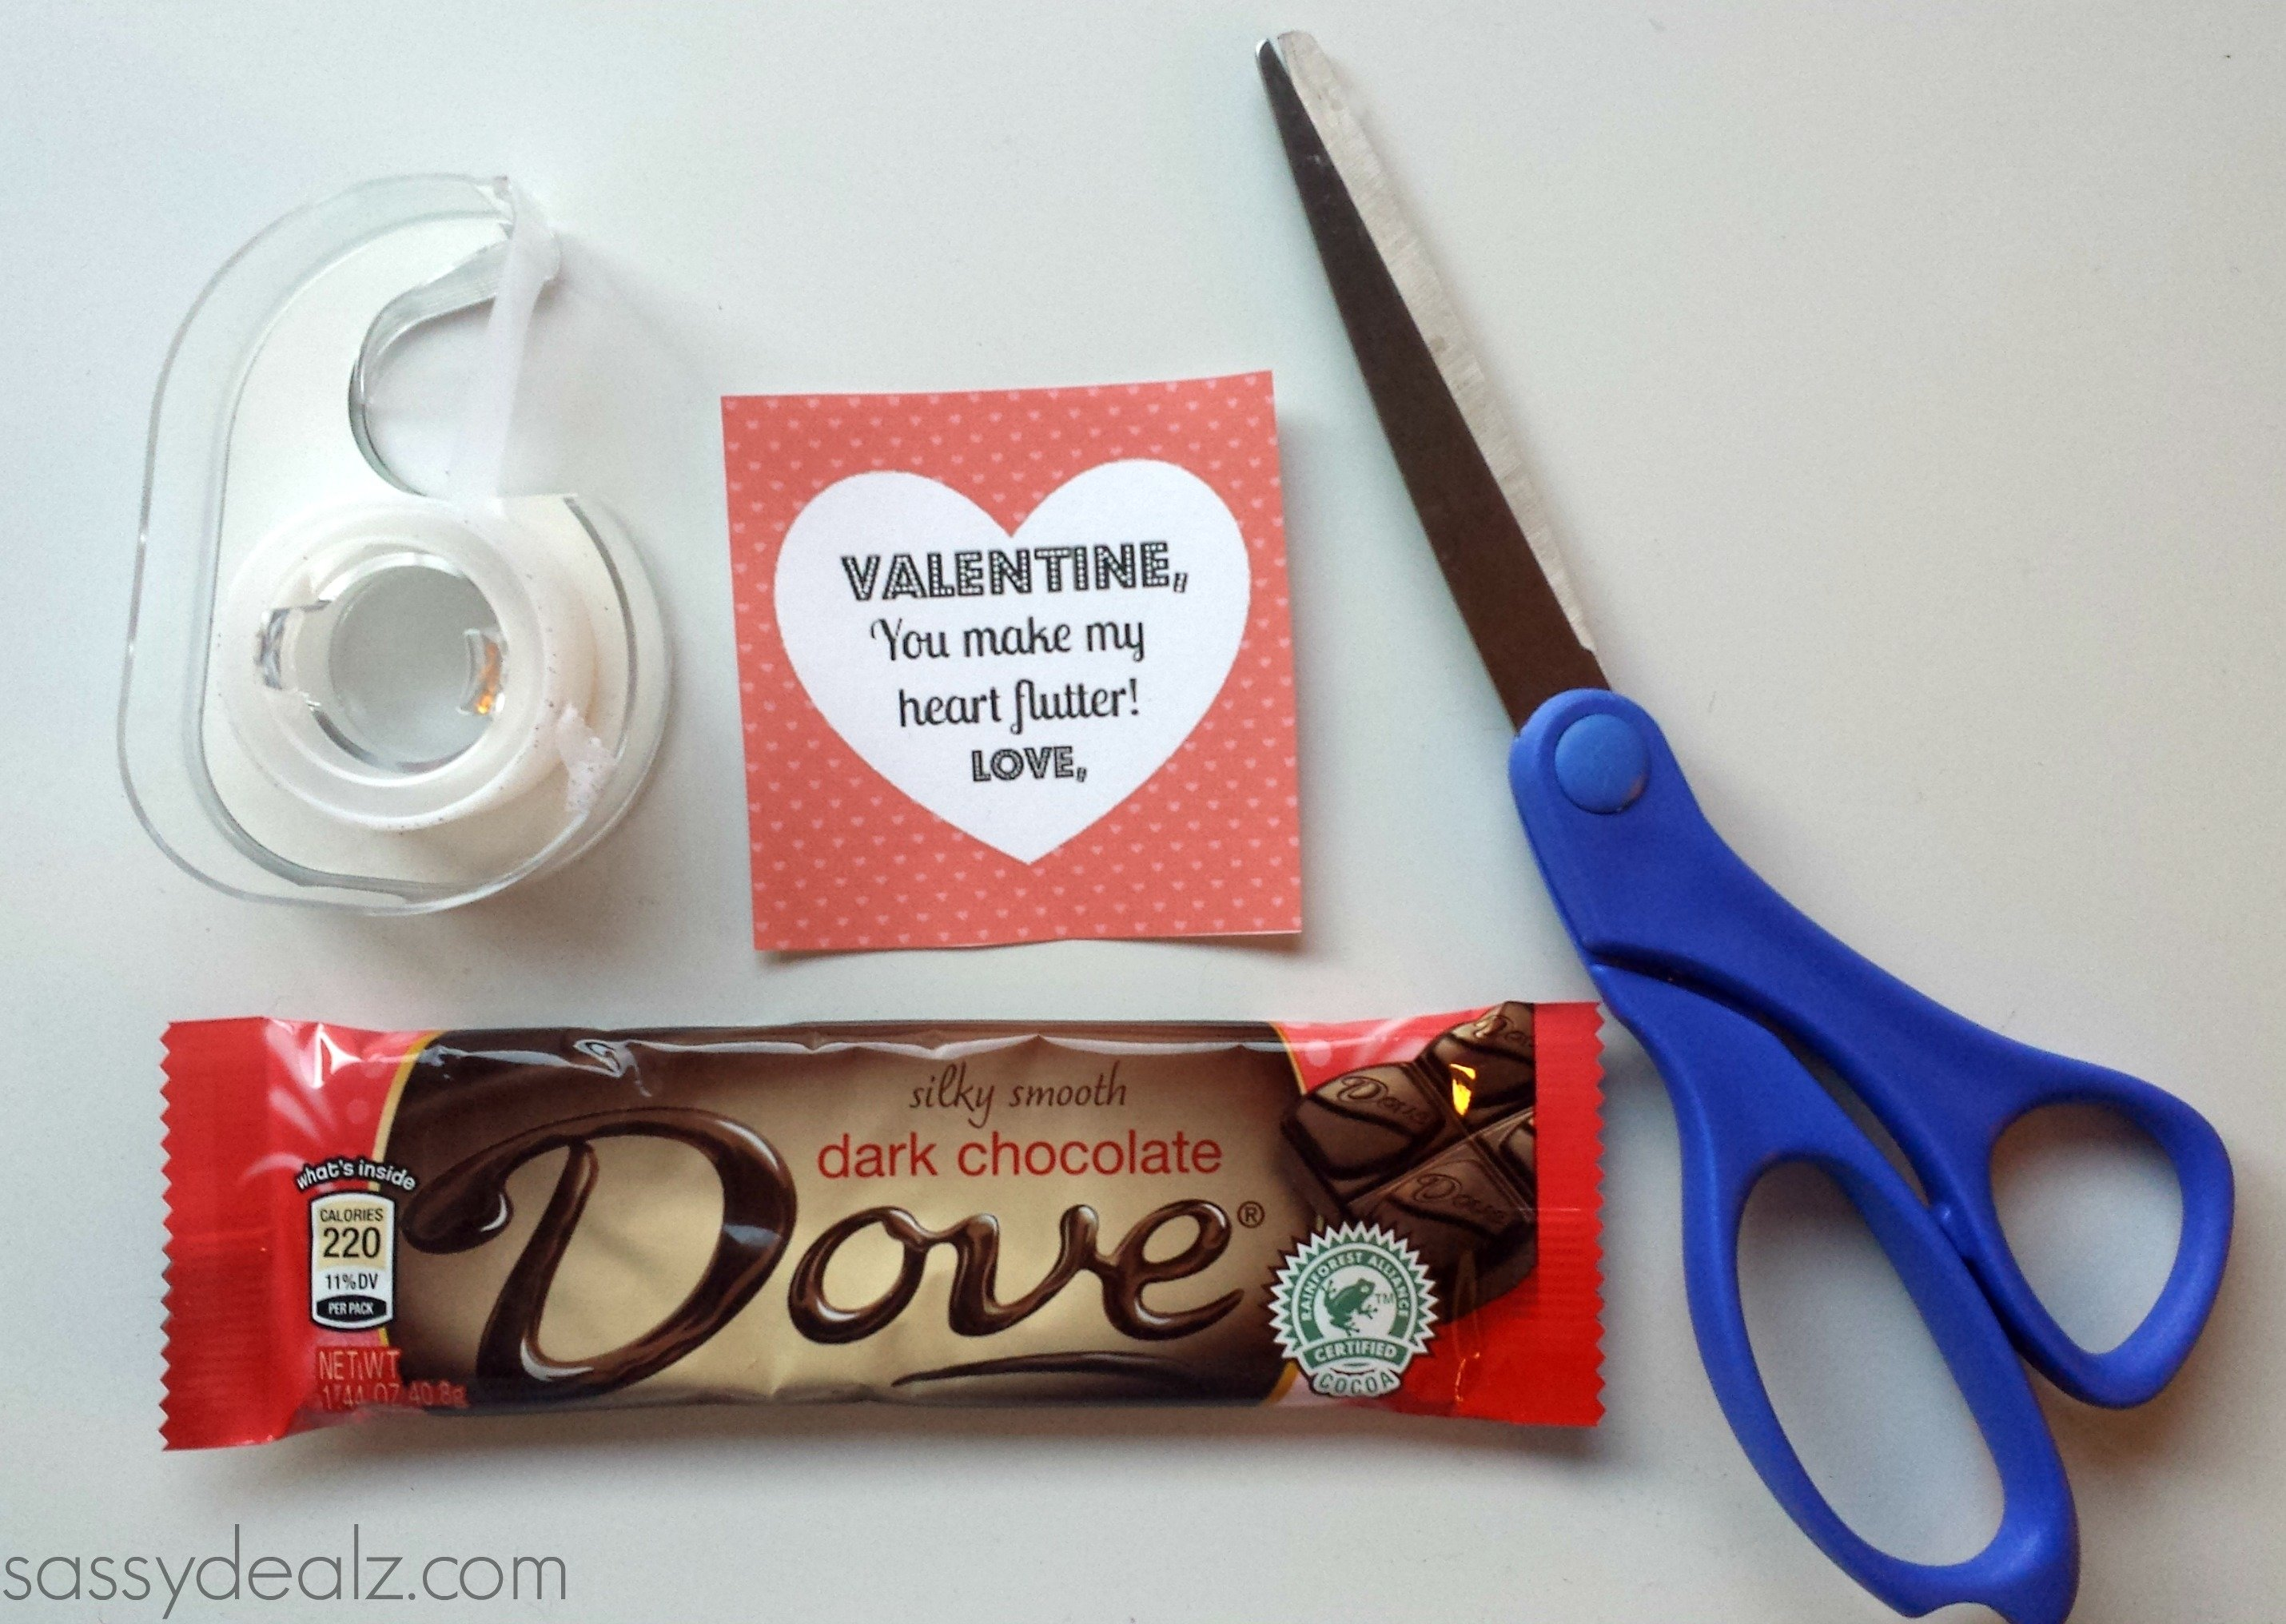 10 Nice Cute Valentines Day Gift Ideas cute valentines day activities quotes wishes for valentines week 2021